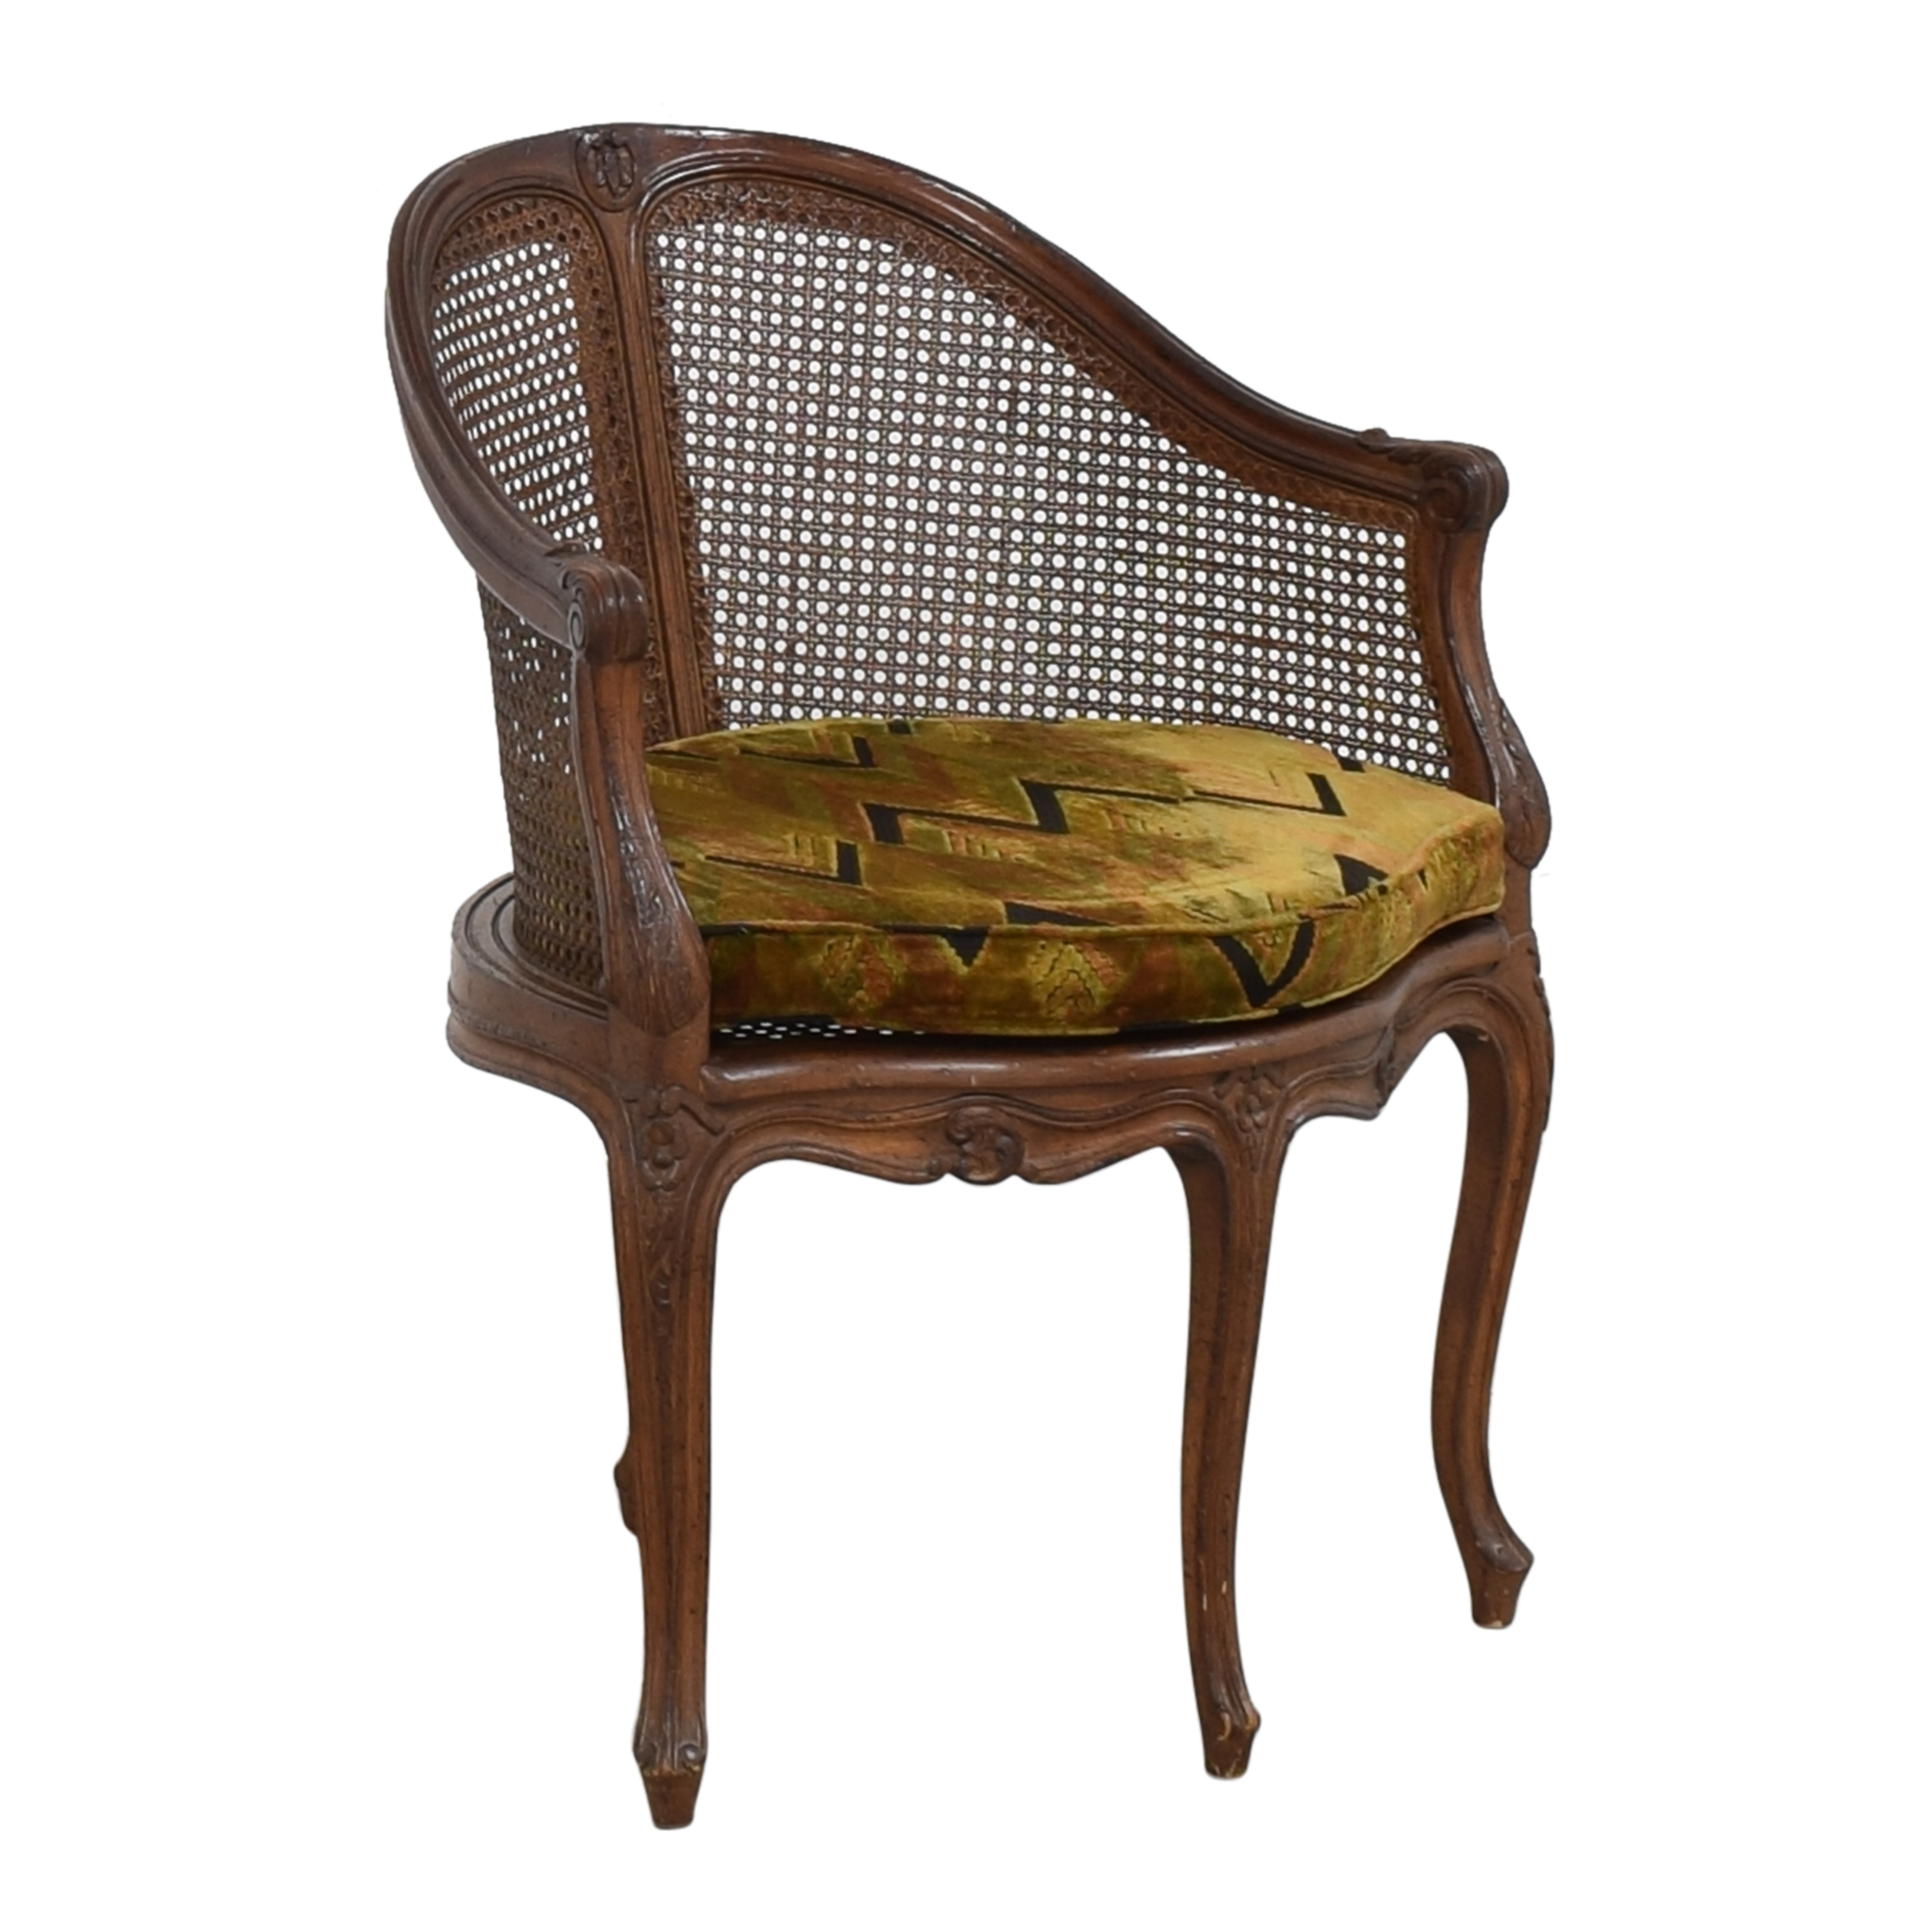 Vintage French-Style Corner Chair